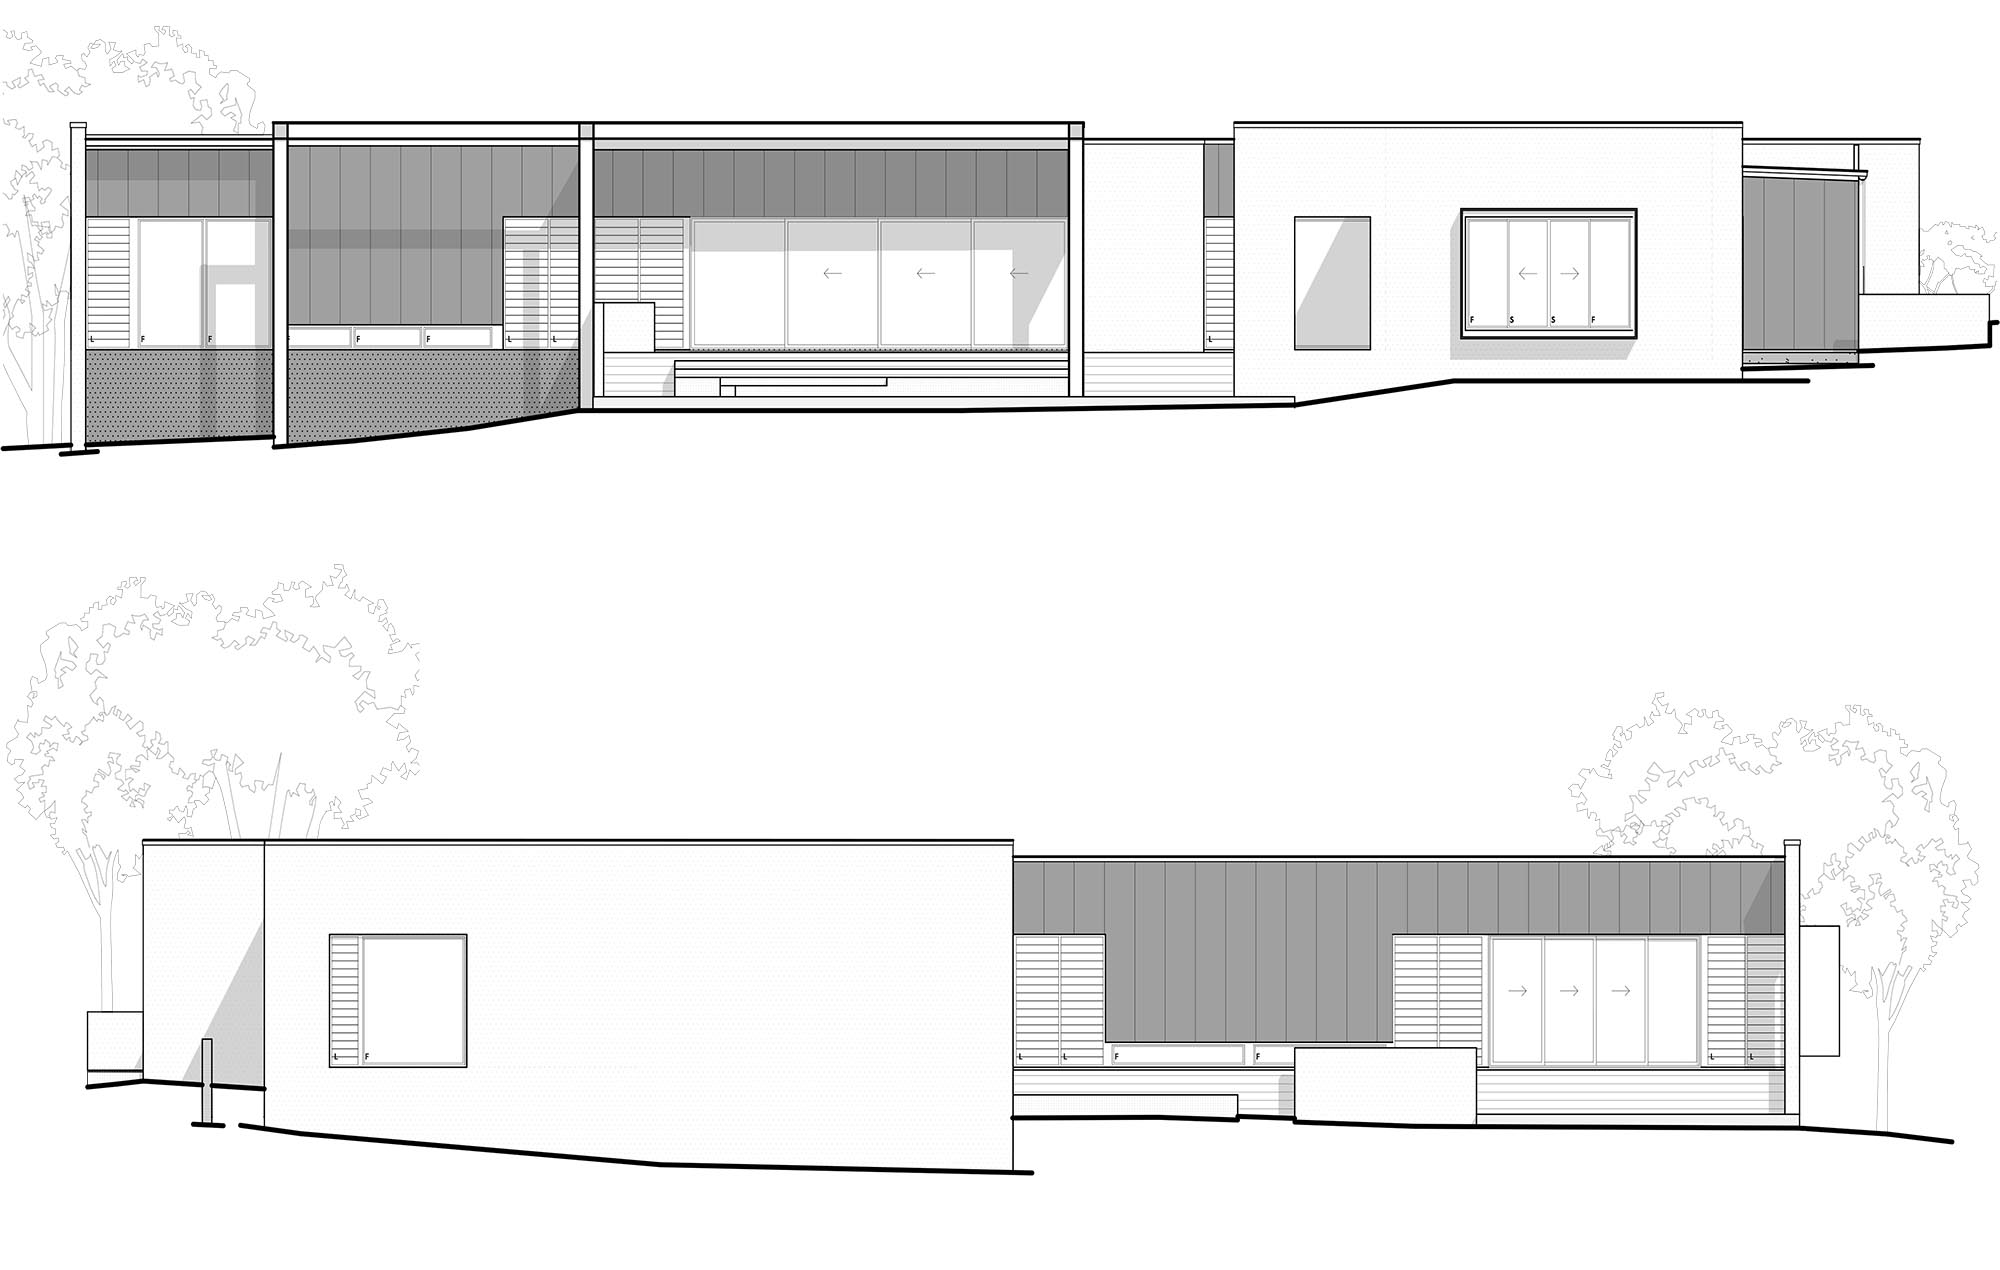 westerhuis elevations C+D